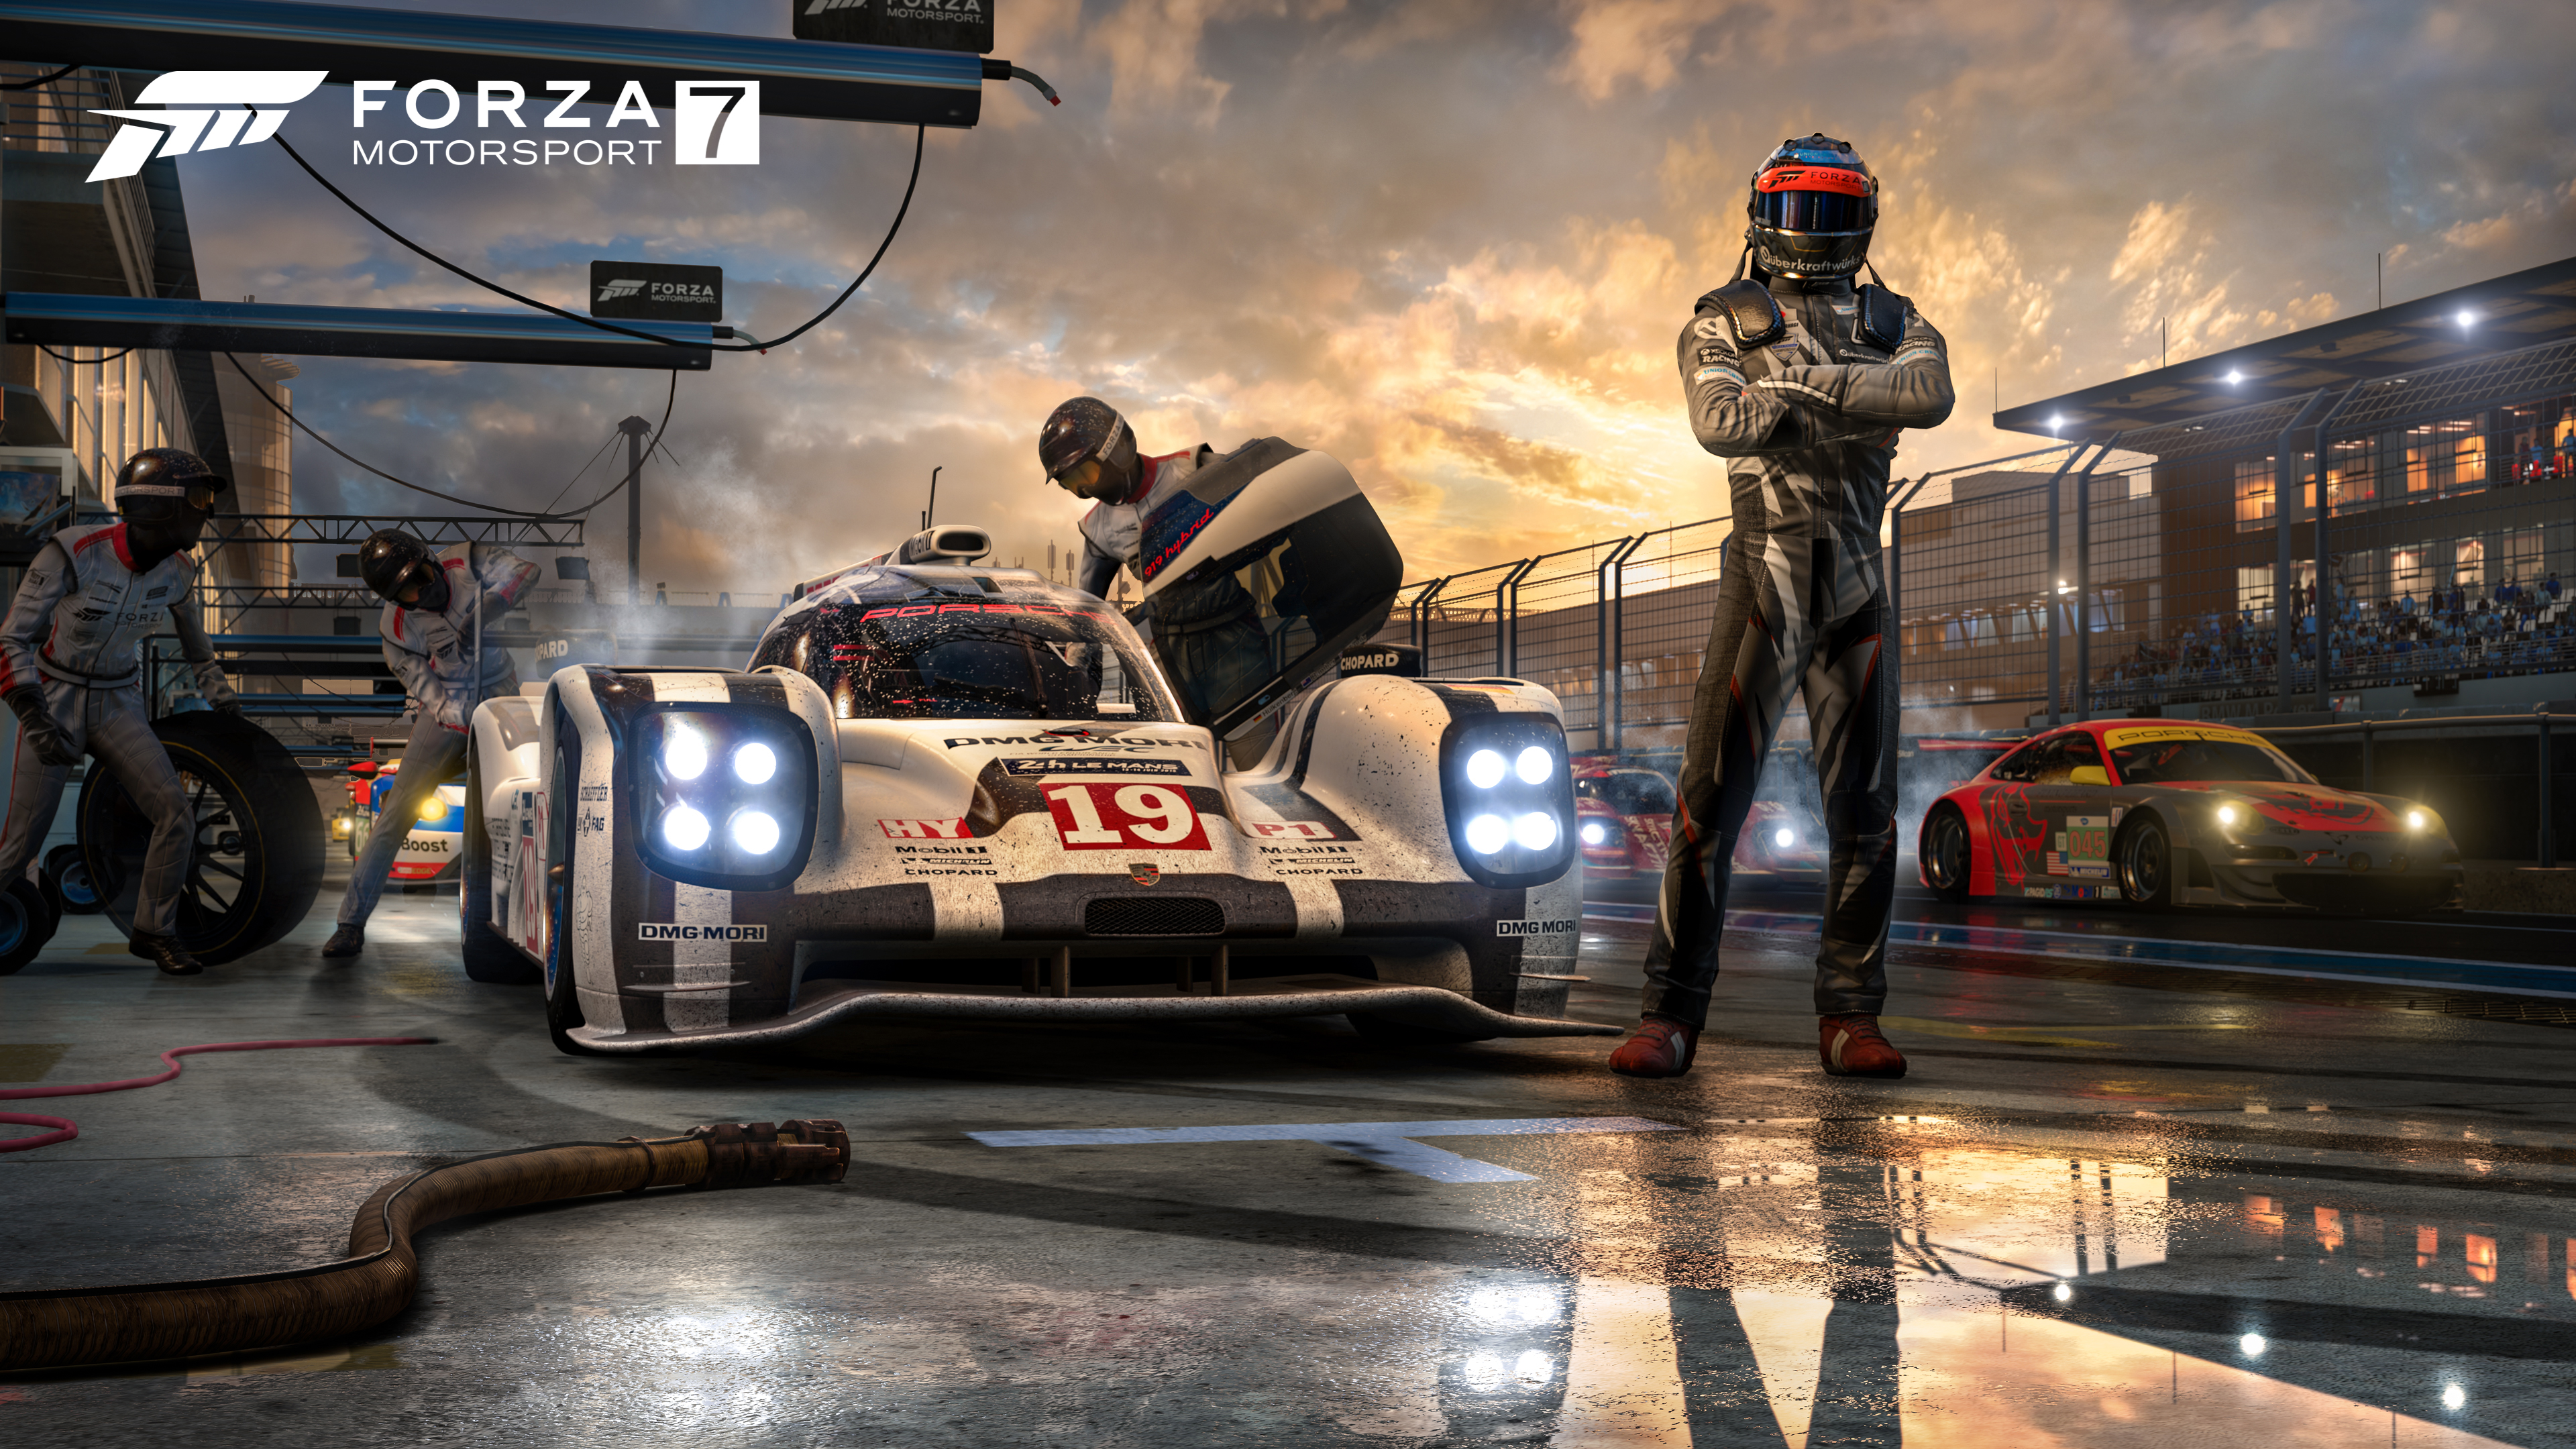 Forza Motorsport 7 Announced For Xbox One X And Windows 10